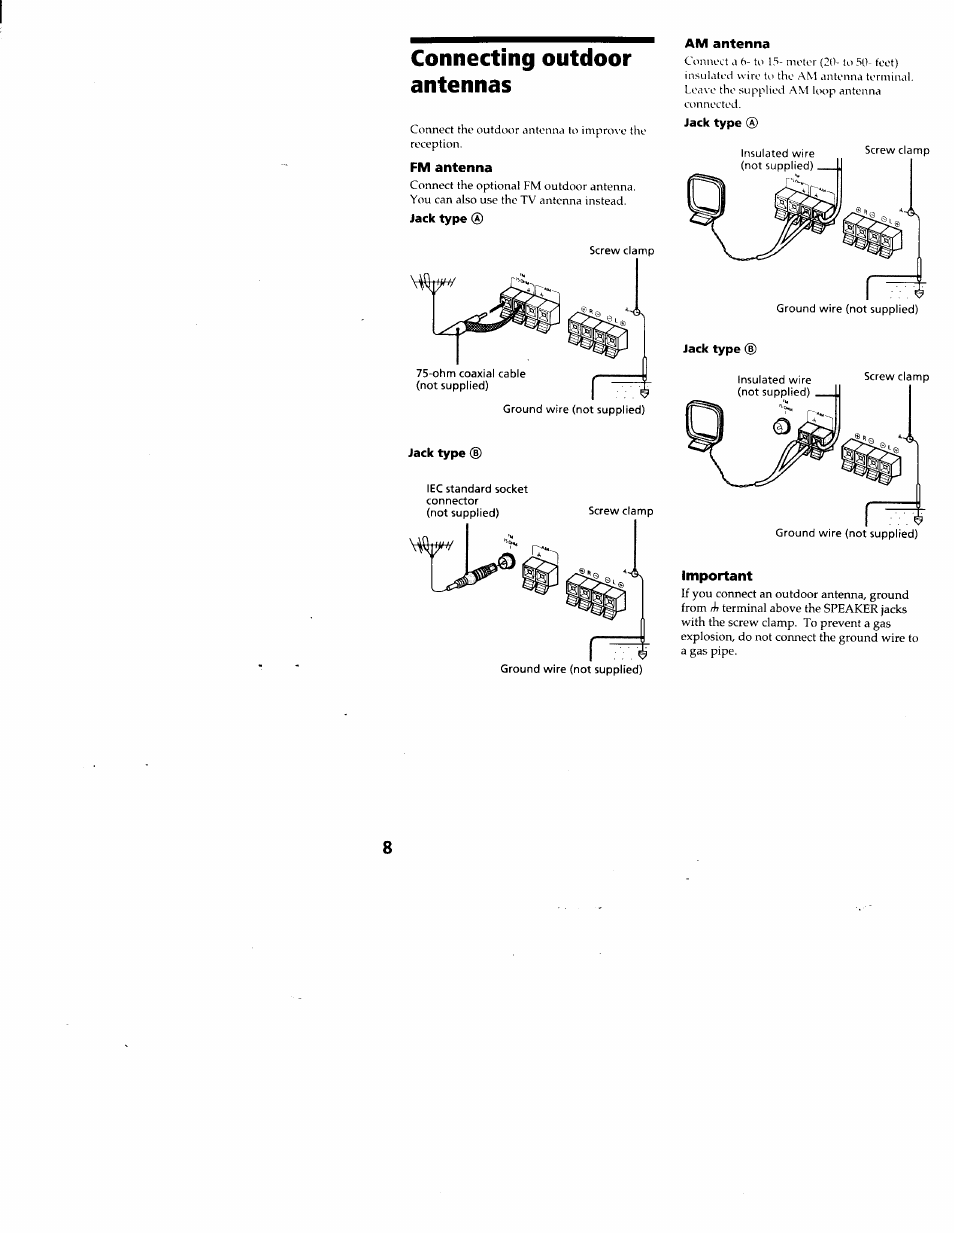 Connecting outdoor antennas, Fm antenna, Jack type | Sony MHC-RX33 User  Manual | Page 8 / 32